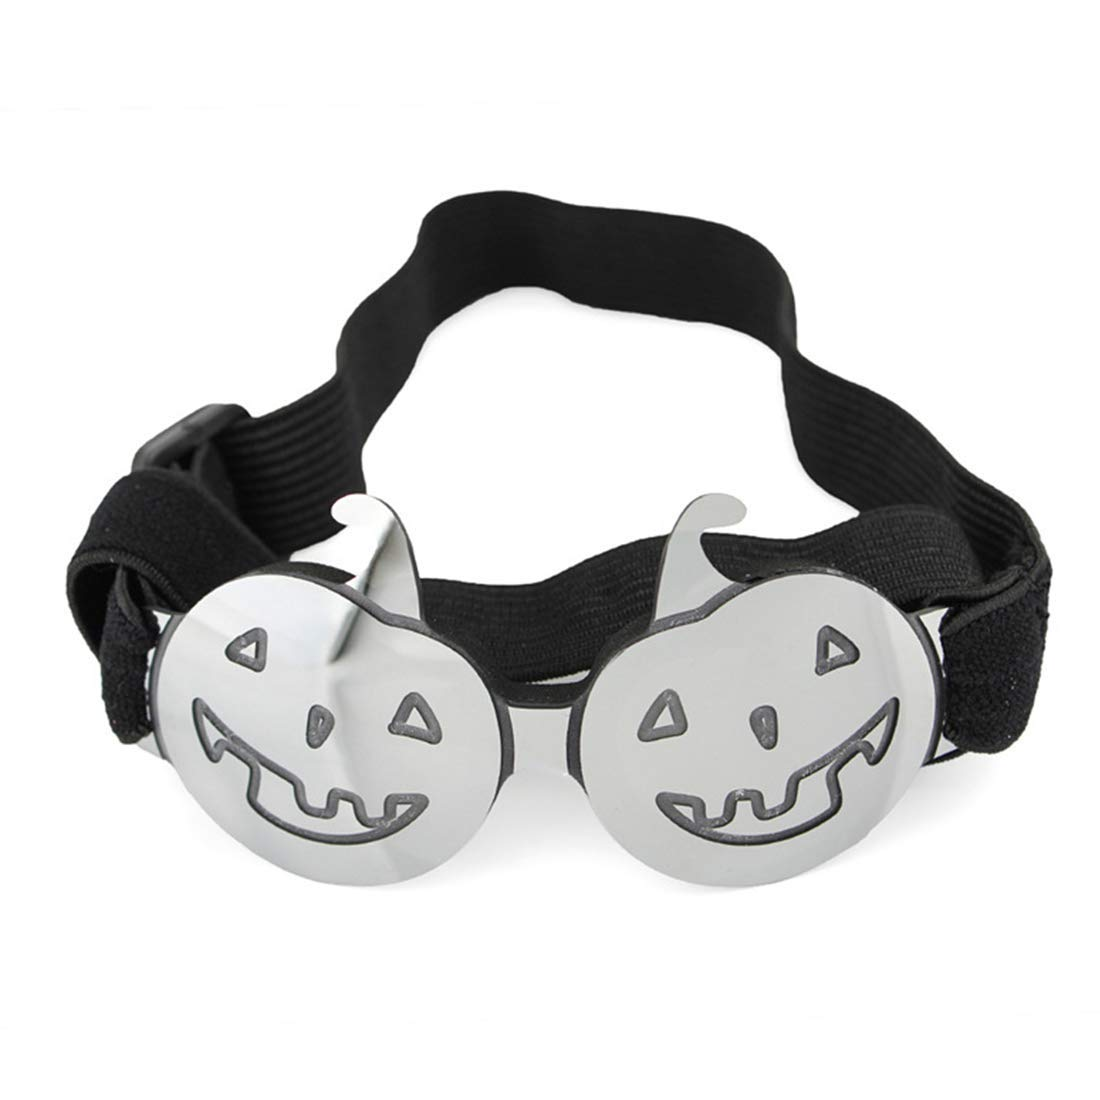 YUHAO Pet Sunglasses Halloween Funny Colorful Pumpkin Glasses Small and Medium Dogs Cats Apply,Silver by YUHAO